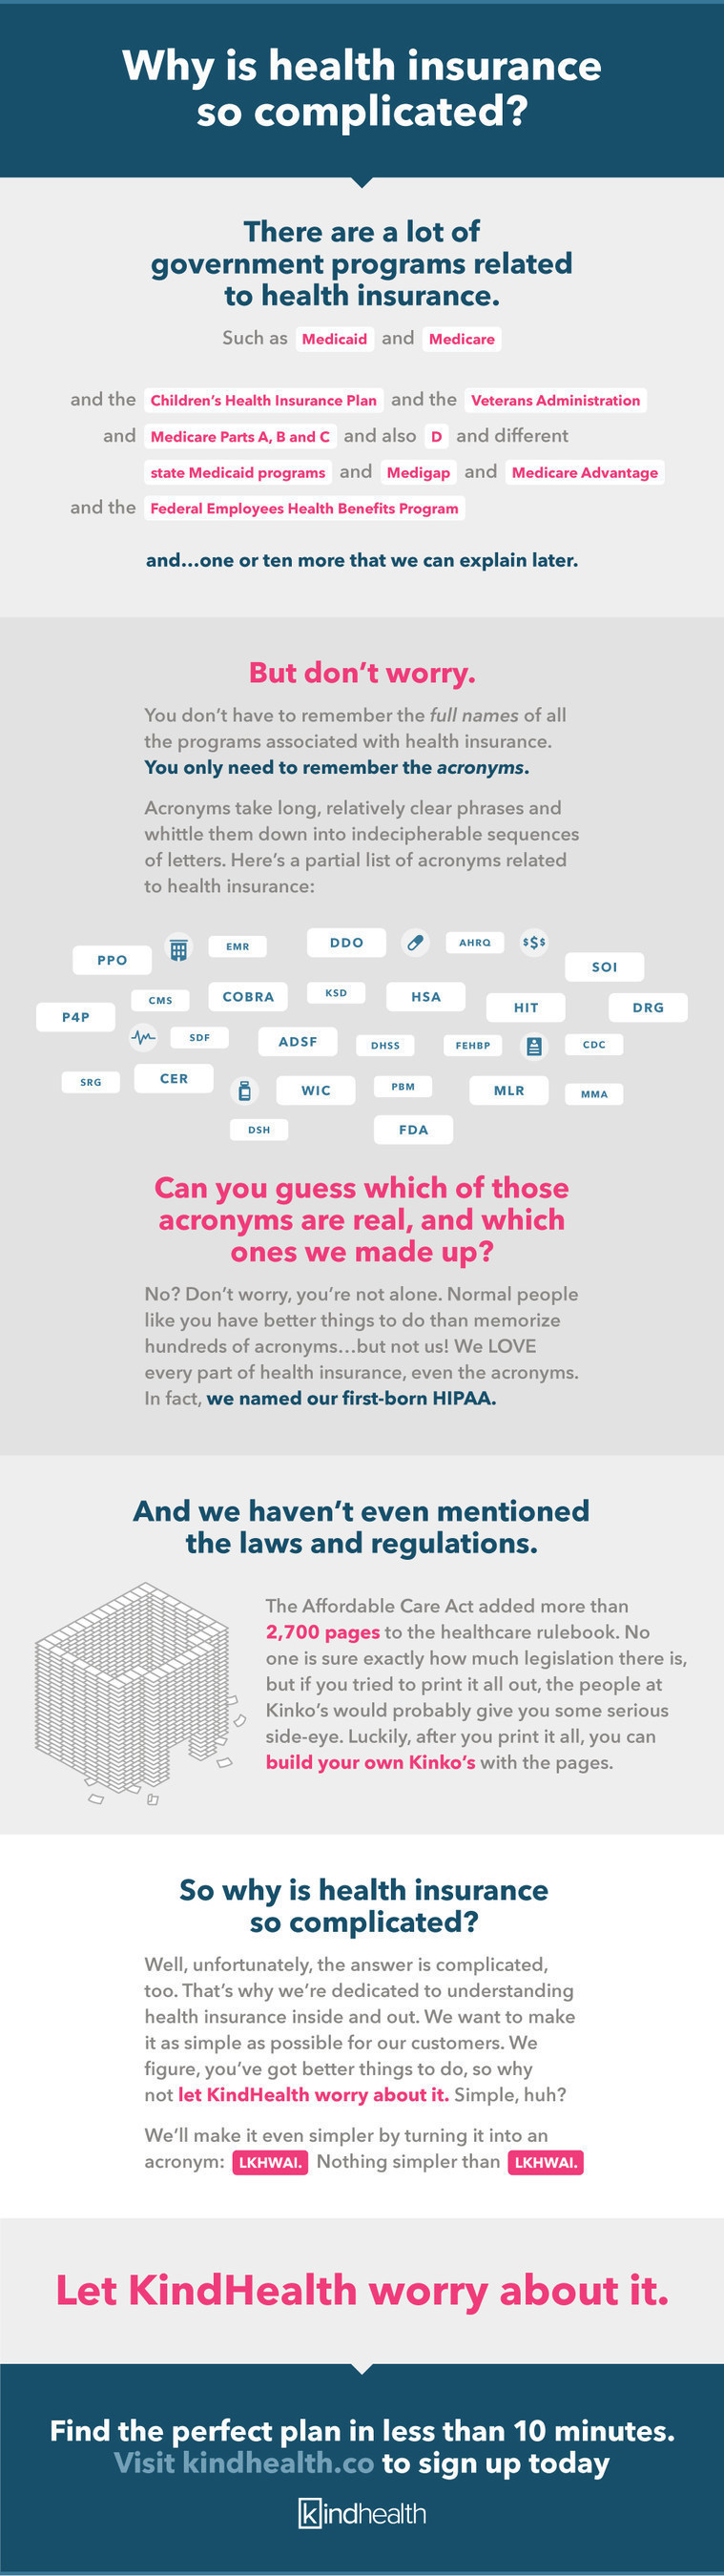 KindHealth Infographic: Why Is Health Insurance So Complicated